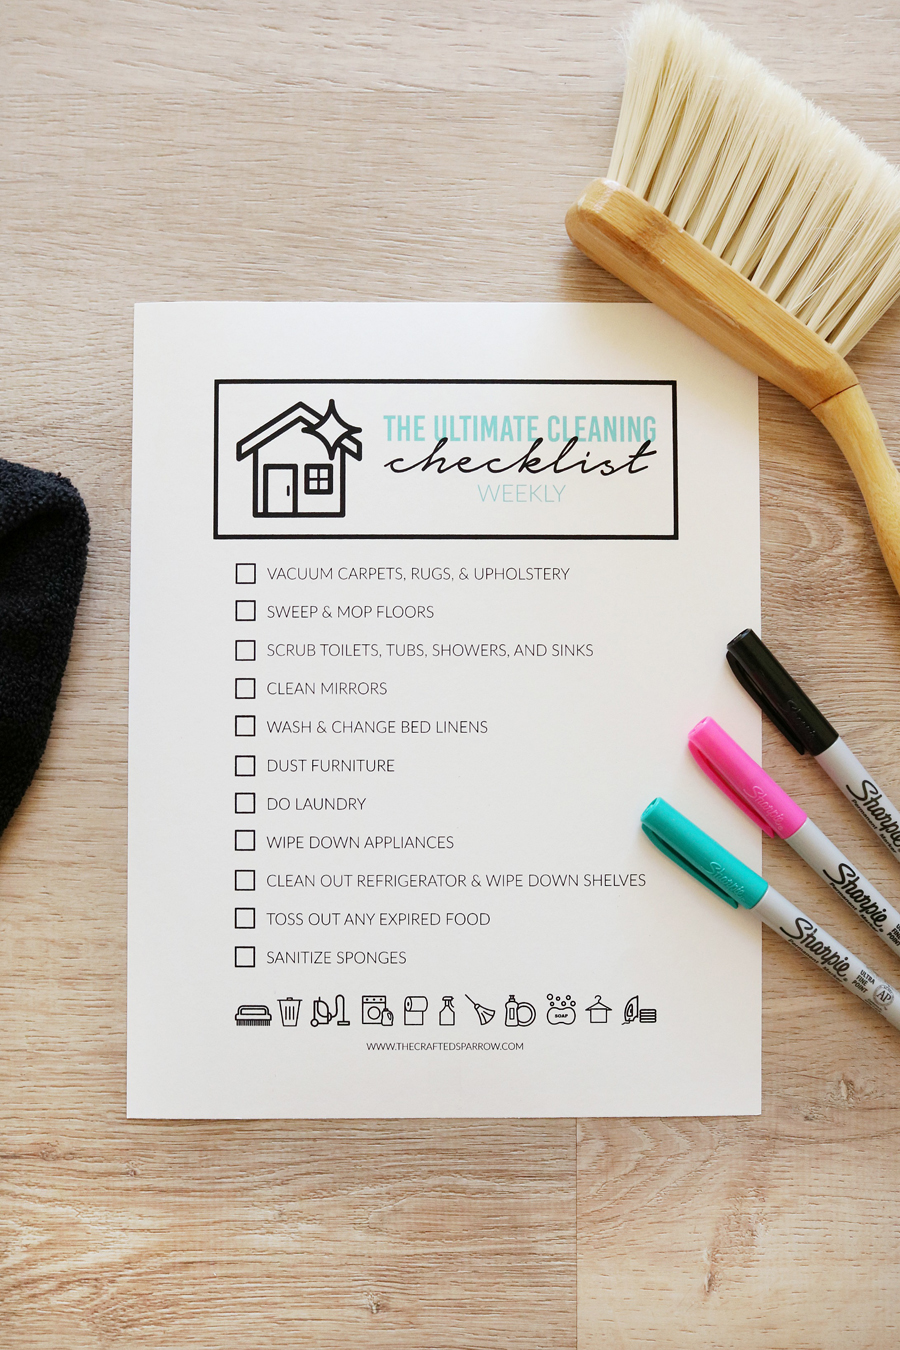 The Ultimate Cleaning Checklist - Weekly Printable Checklists